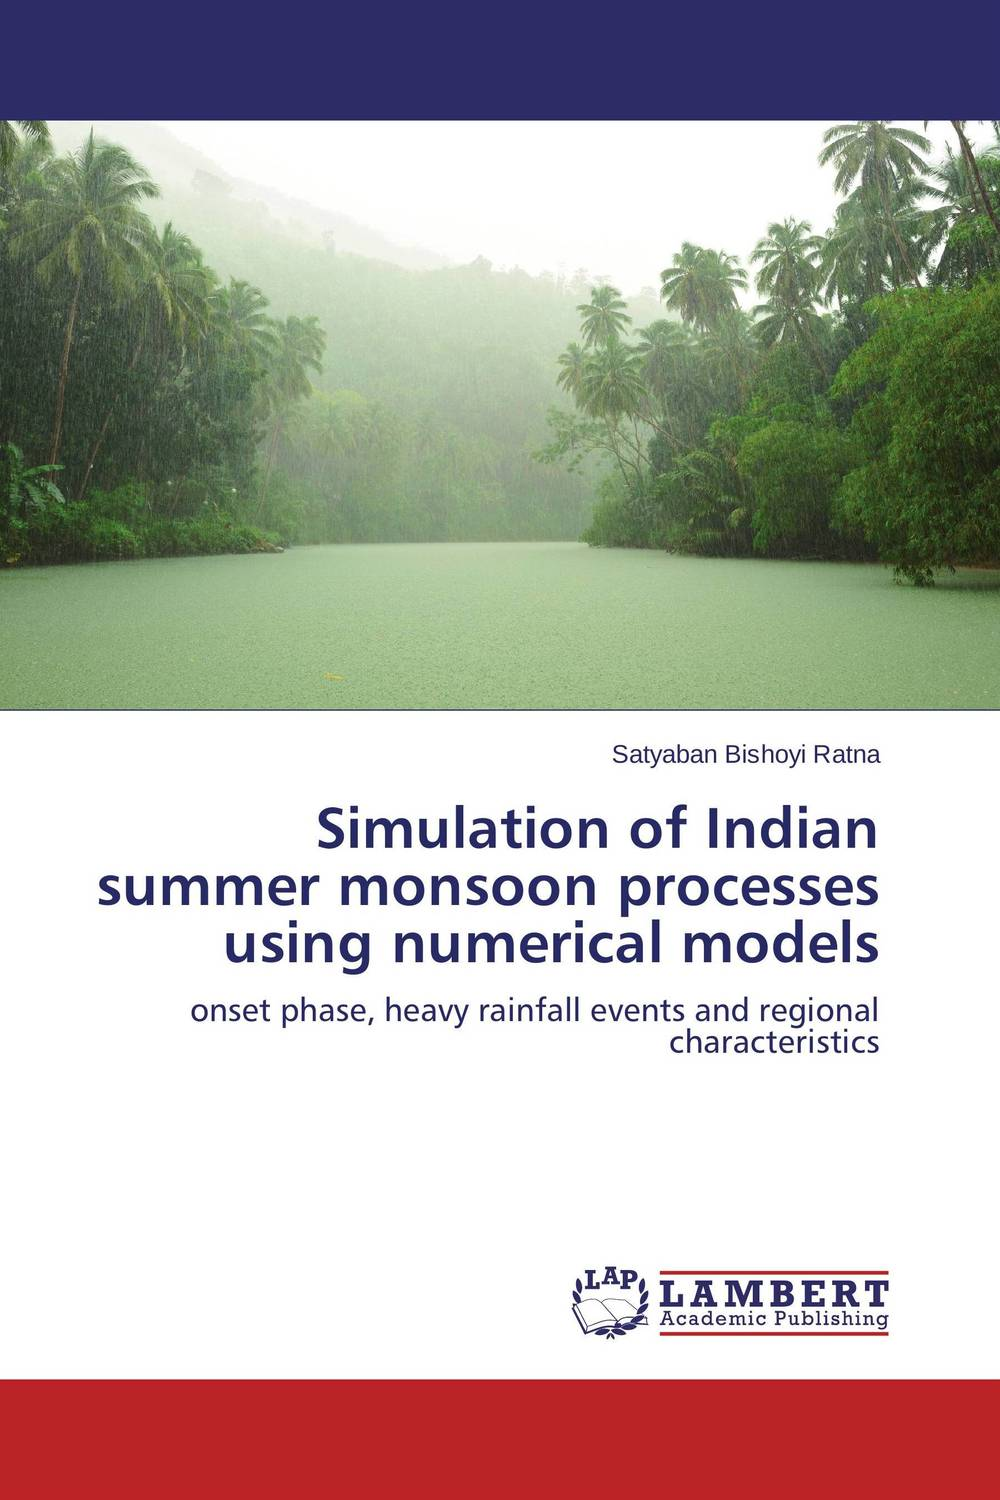 Simulation of Indian summer monsoon processes using numerical models simulation of atm using elliptic curve cryptography in matlab